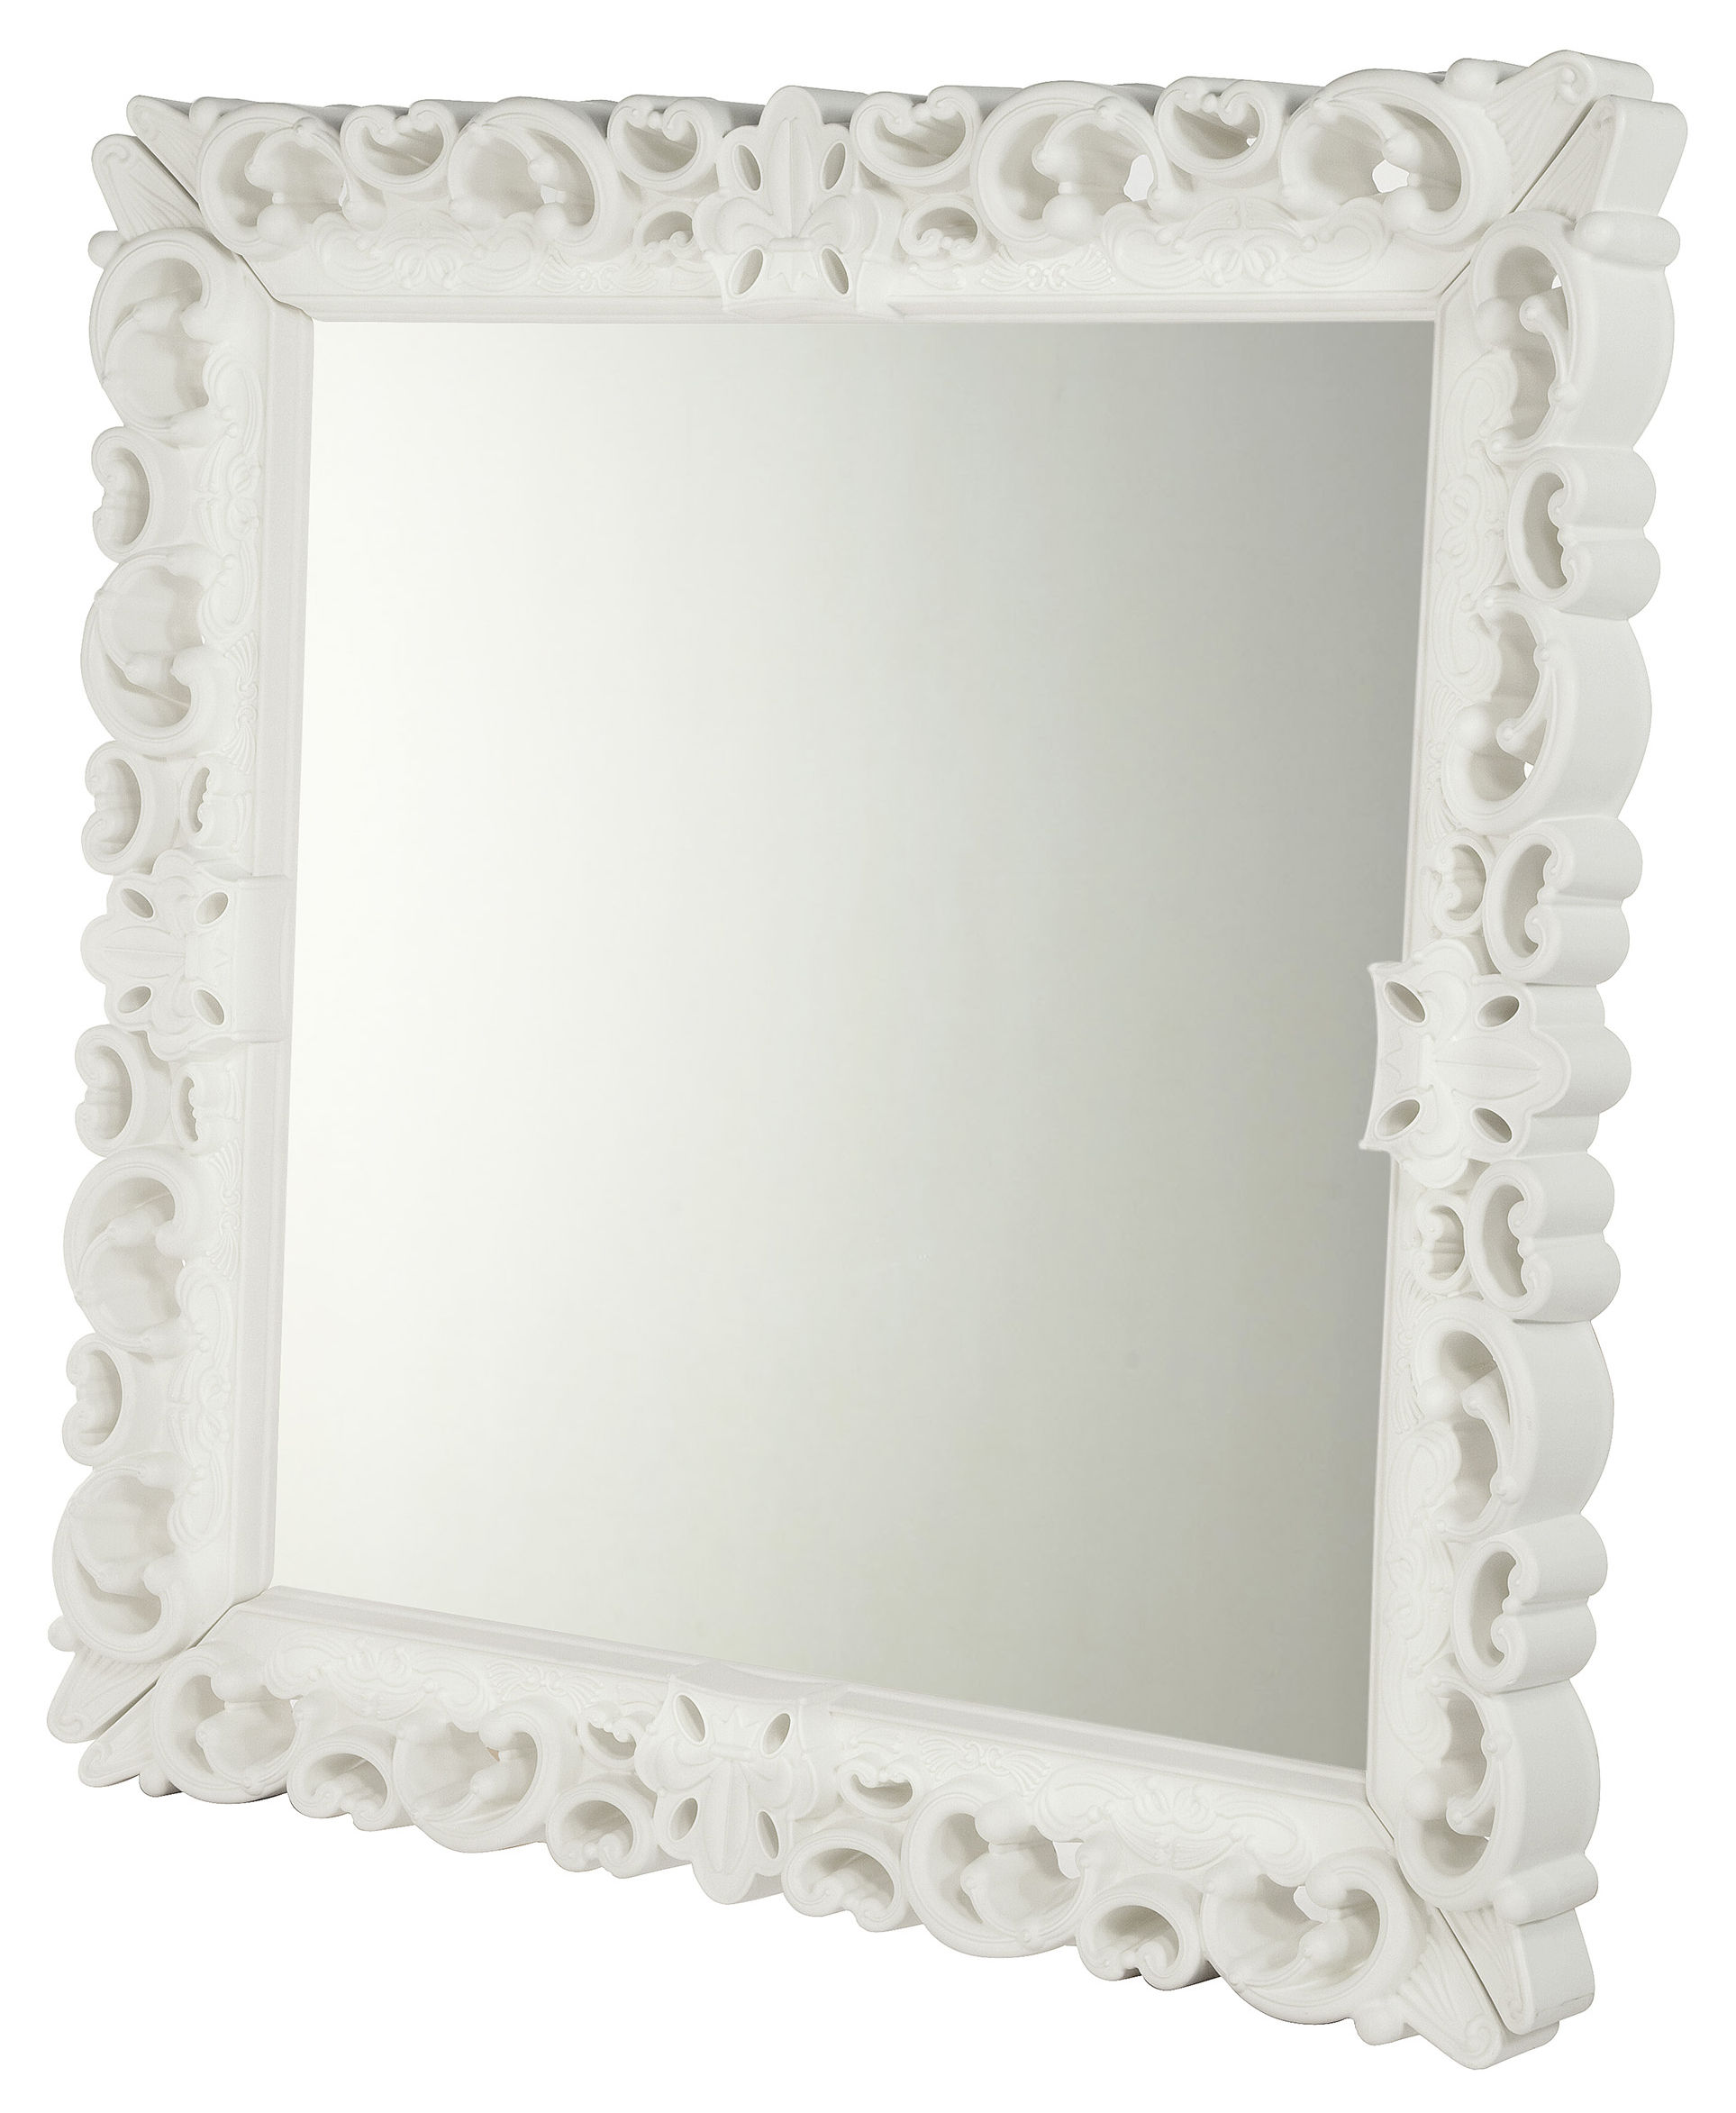 Outdoor - Ornaments & Accessories - Mirror of Love Wall mirror - 153 x 153 cm by Design of Love by Slide - White - roto-moulded polyhene